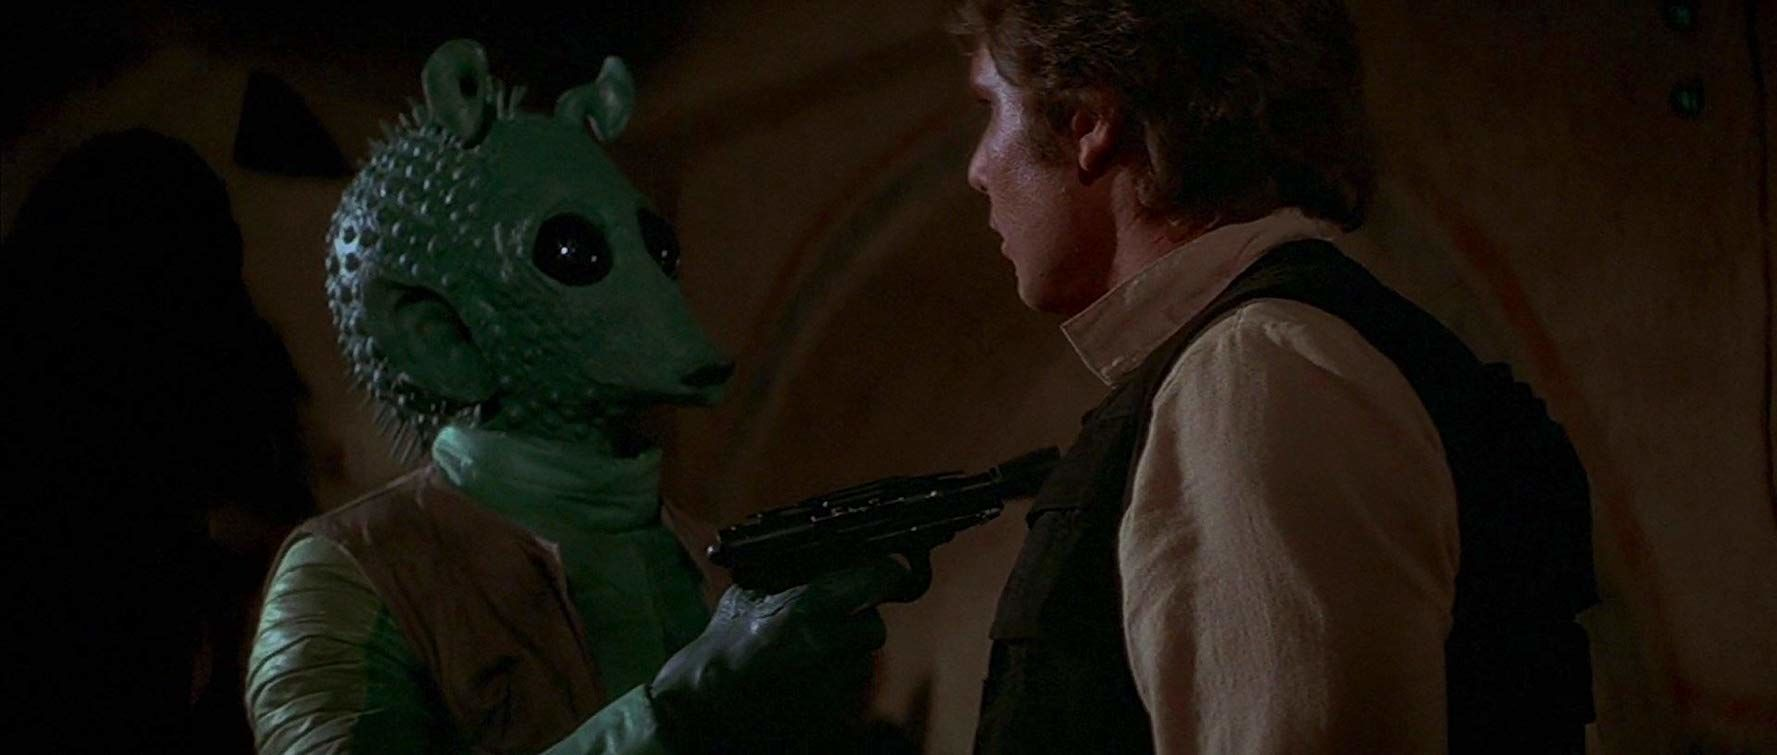 In Disney+'s Star Wars, Greedo still shoots first but has the last word in apparent new edit